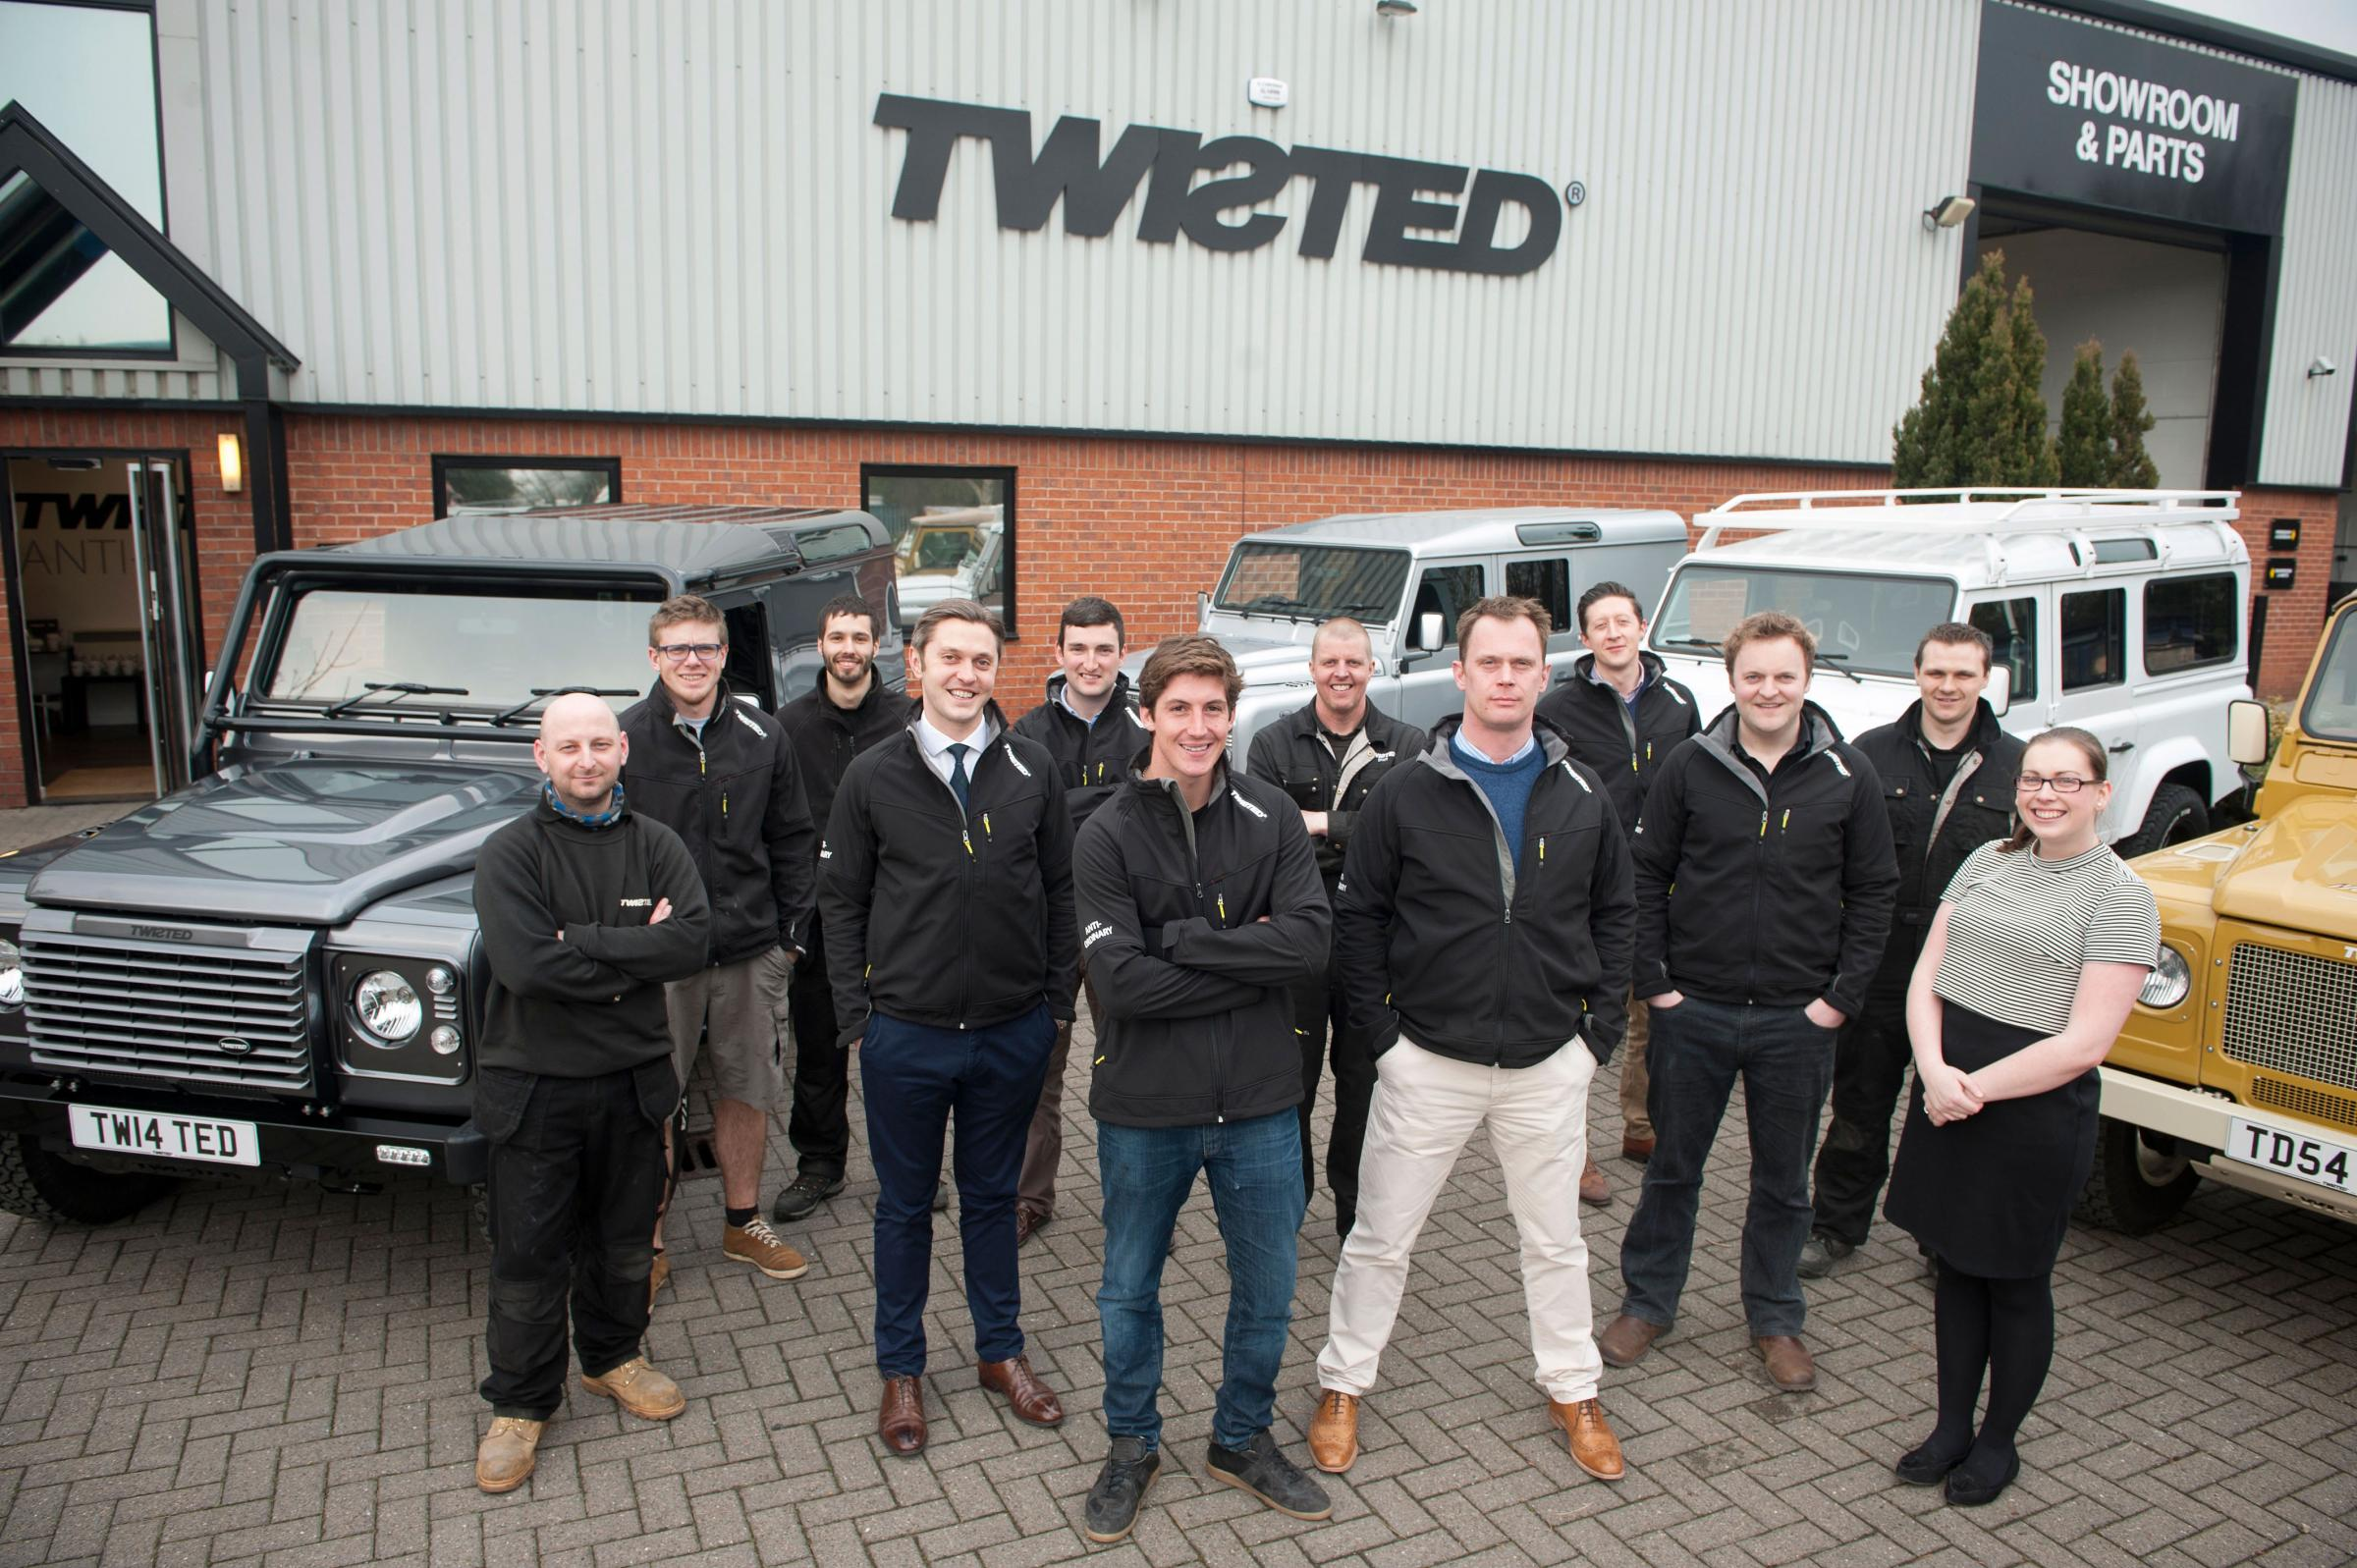 Front row, centre, from left to right are Alex Duckett, operations director, George Meyrick, England international Polo player and Twisted brand ambassador, and Charles Fawcett, managing director of Twisted